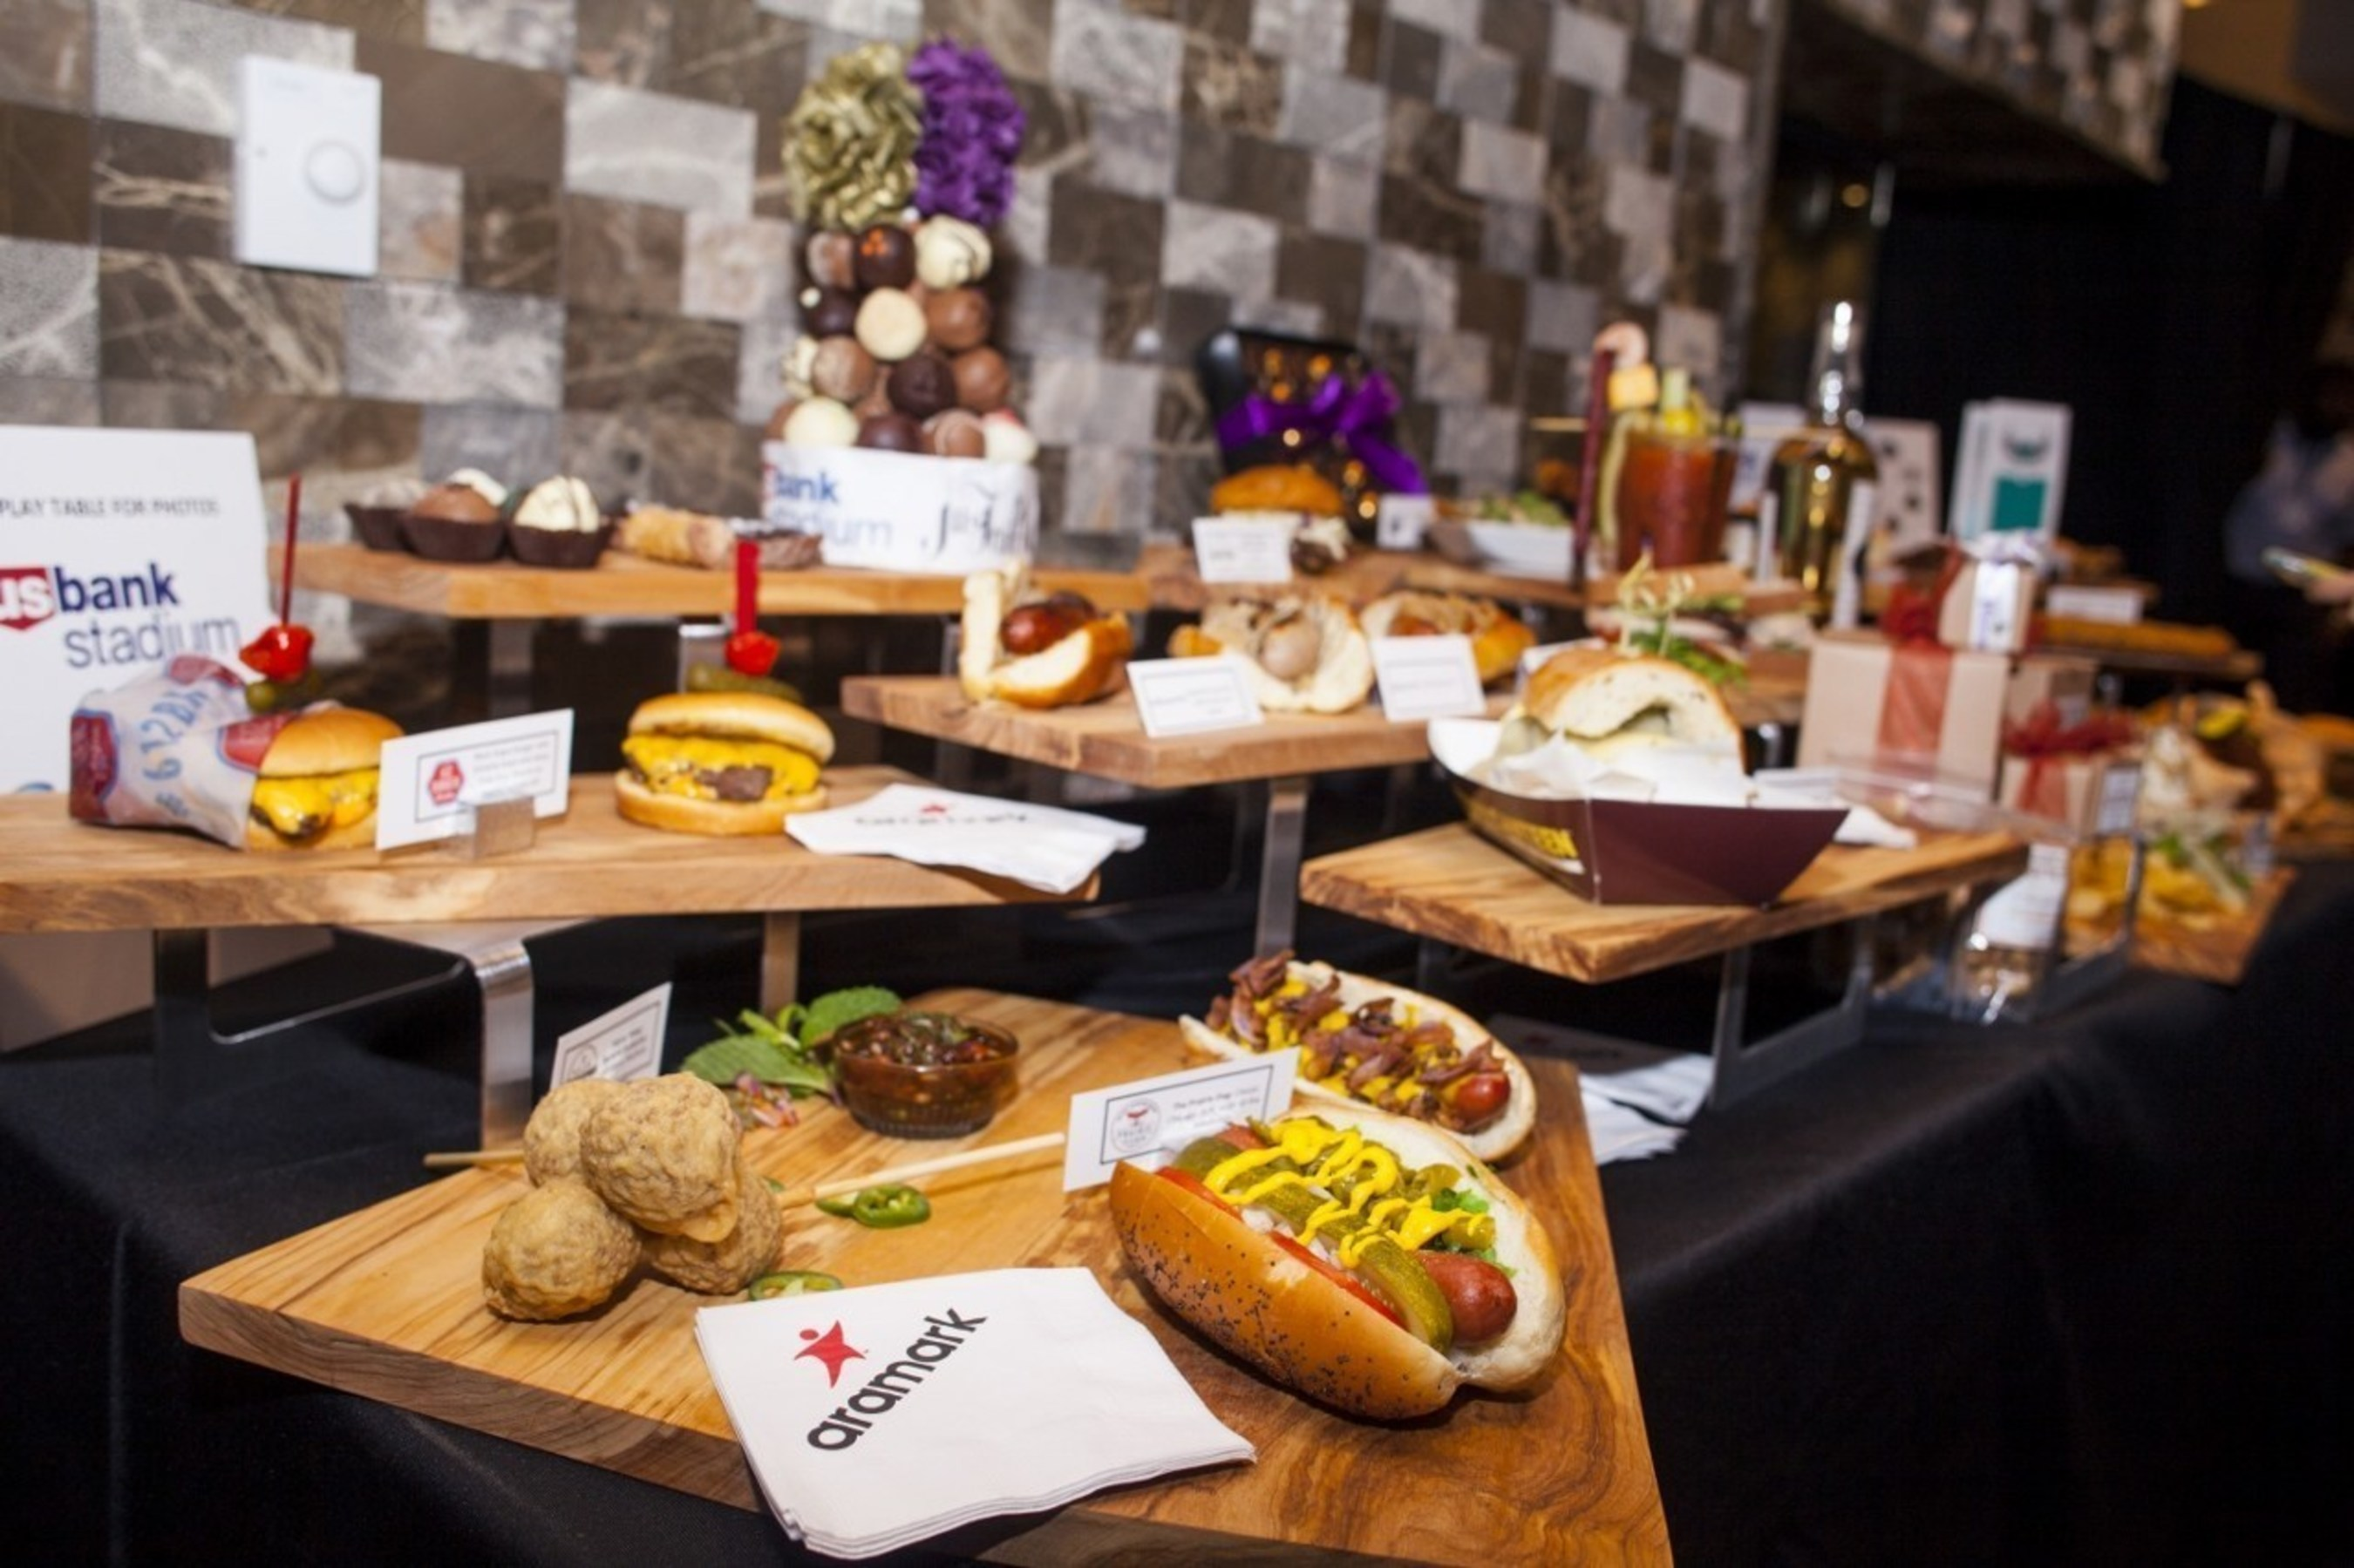 Aramark, Minnesota Sports Facilities Authority, Minnesota Vikings and SMG today unveil a savory stadium menu for the new U.S. Bank Stadium, featuring more than 20 restauranteurs, caterers and small business owners from the Twin Cities.